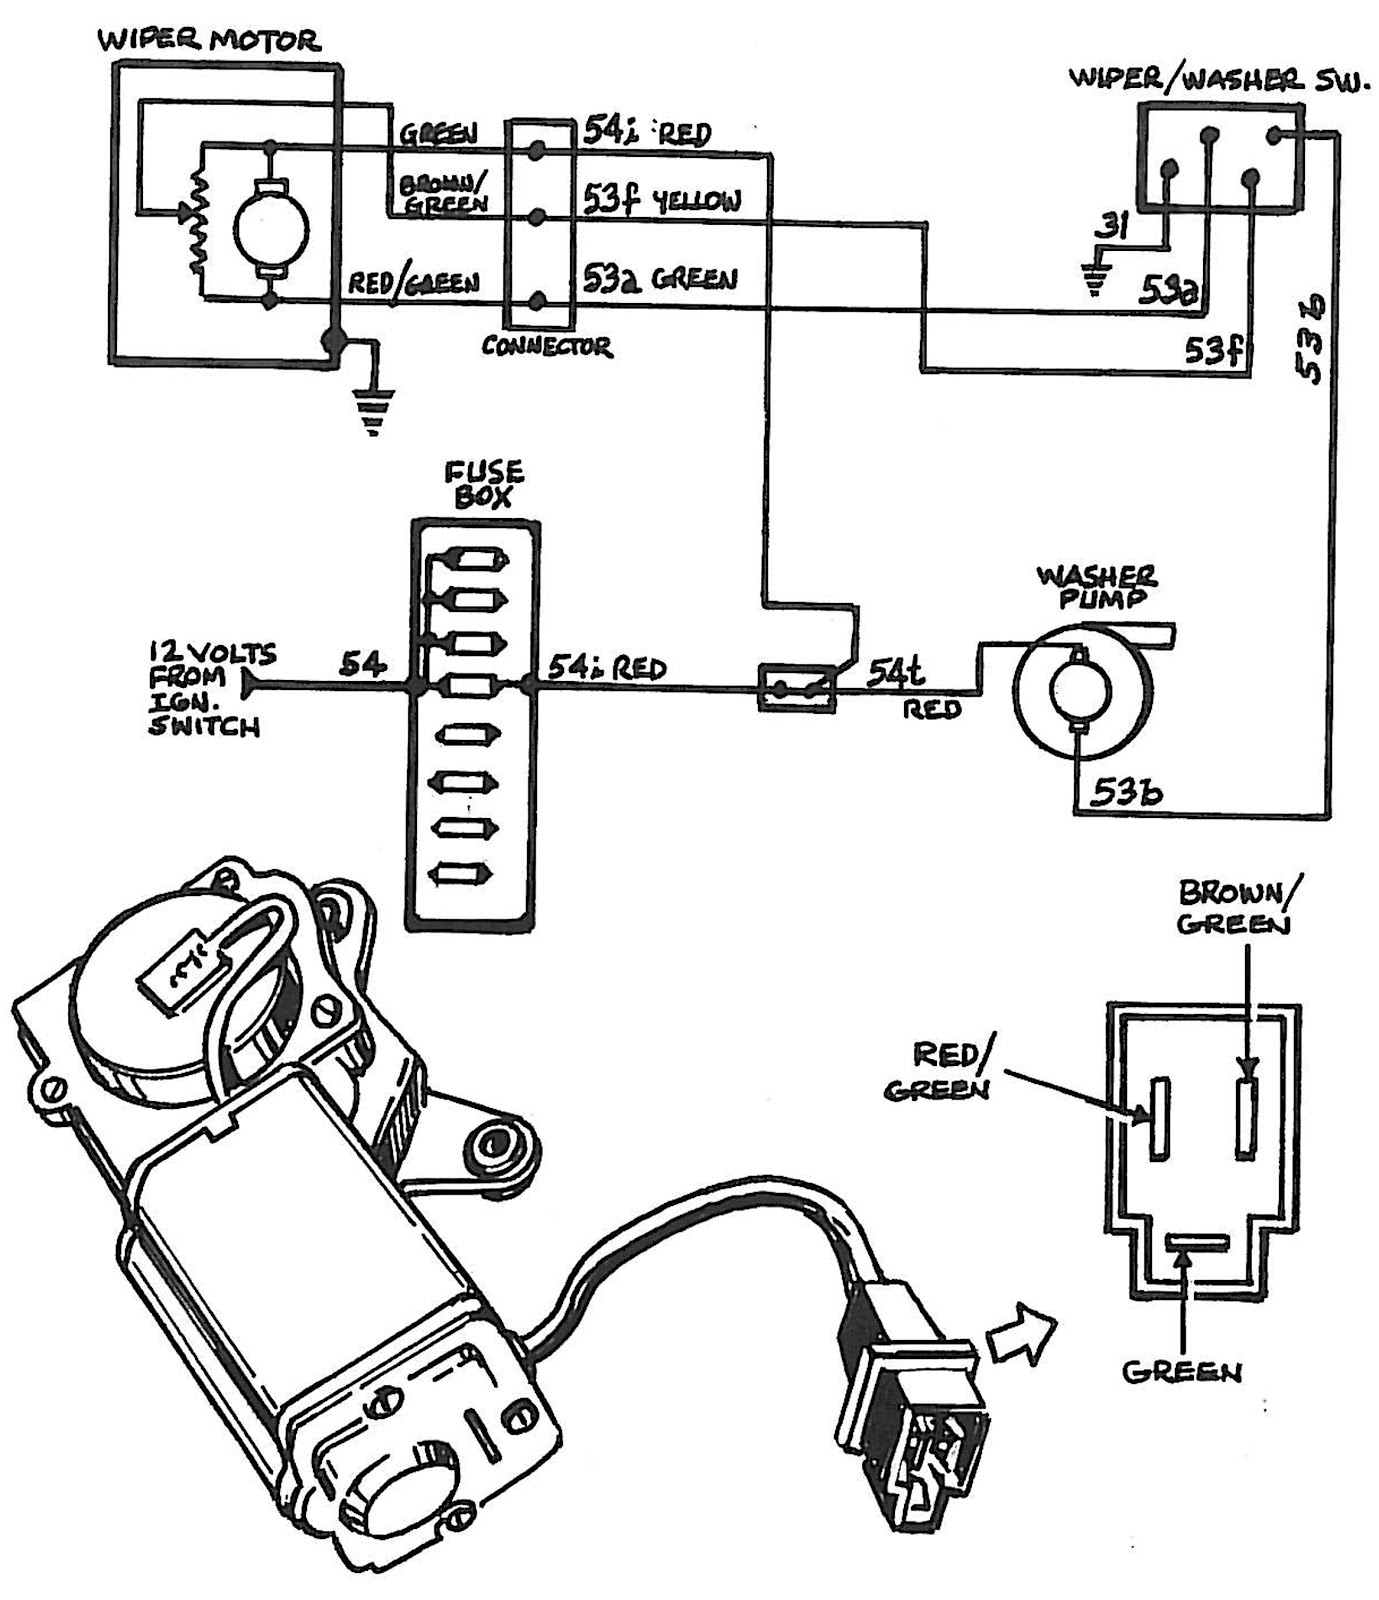 Dodge Dakota Blend Door Actuator Location moreover 95 Chrysler New Yorker Engine Diagram likewise P 0900c1528003da59 furthermore Dodge Nitro Steering Diagram Html moreover Chevrolet Wiper Wiring Diagram. on 2000 dodge dakota heater core diagram